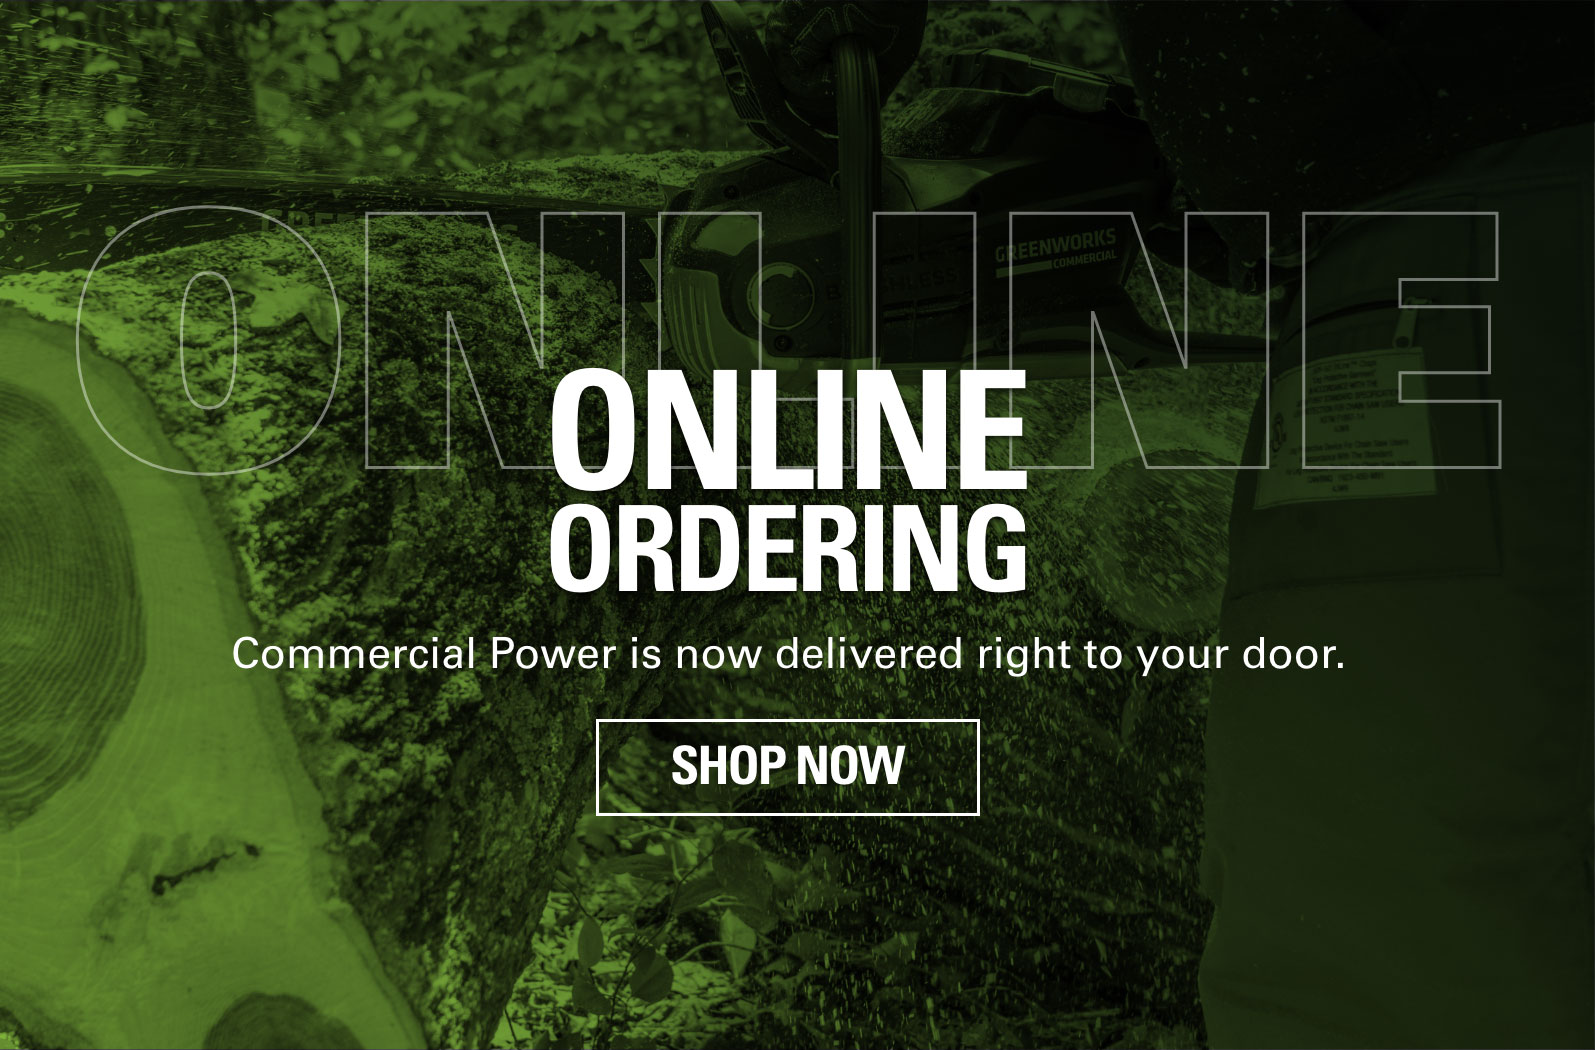 Shop Now | Greenworks Commercial